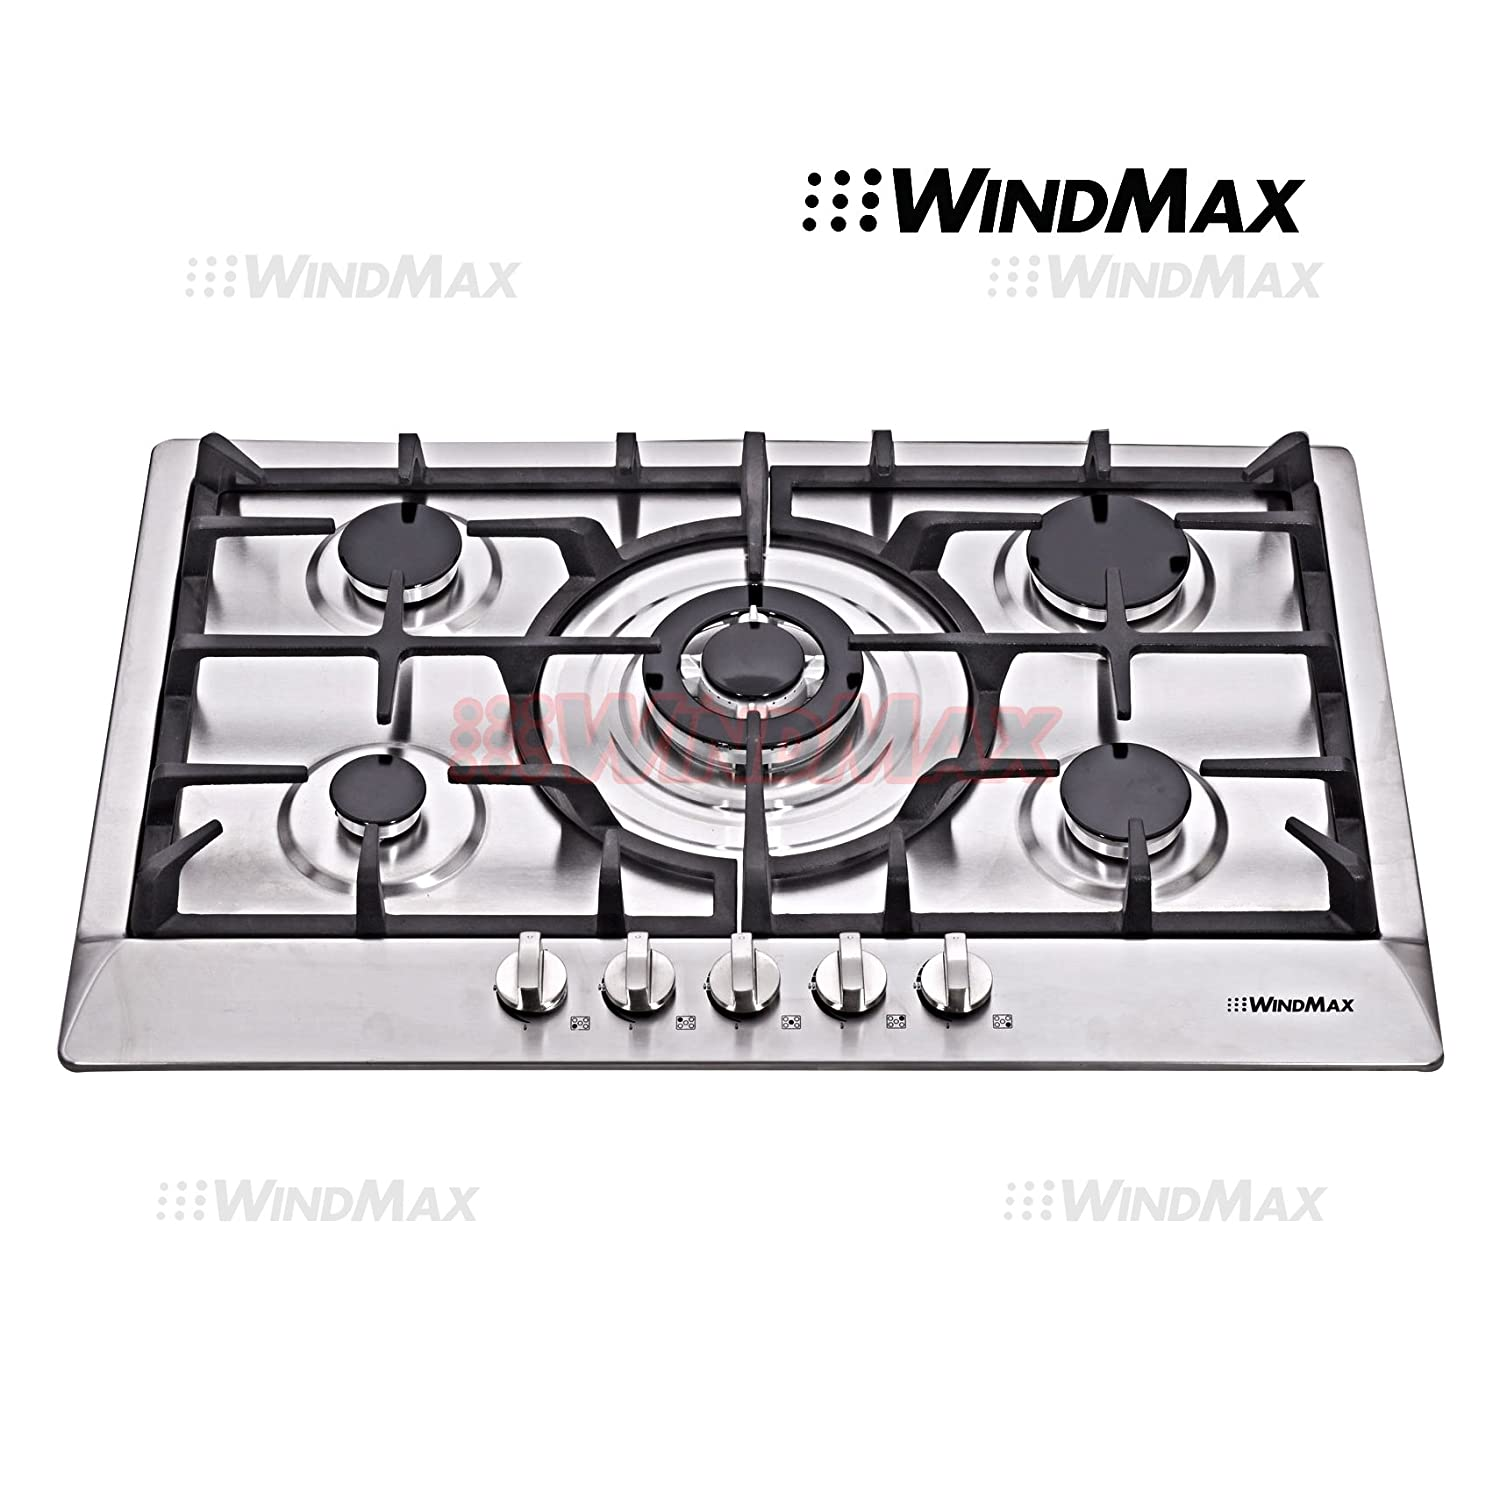 Delightful Amazon.com: Windmax New 30 Inch Stainless Steel 5 Burner Built In Stoves NG  LPG Gas Cooktop Cooker: Appliances